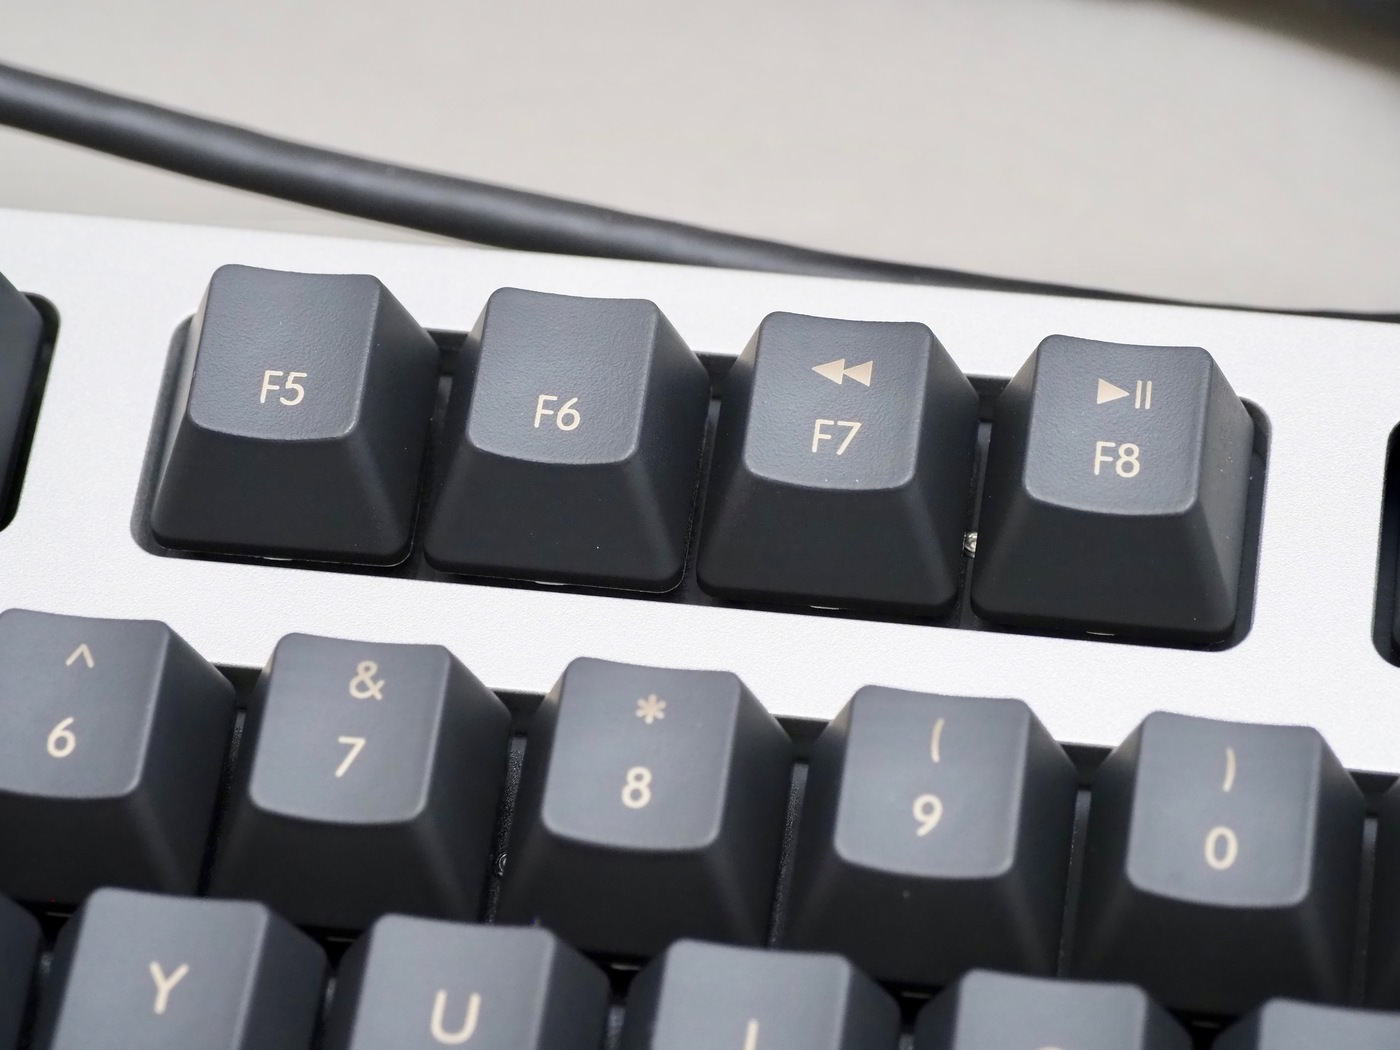 realforce-tkl-for-mac-pfu-limited-edition-review_00018